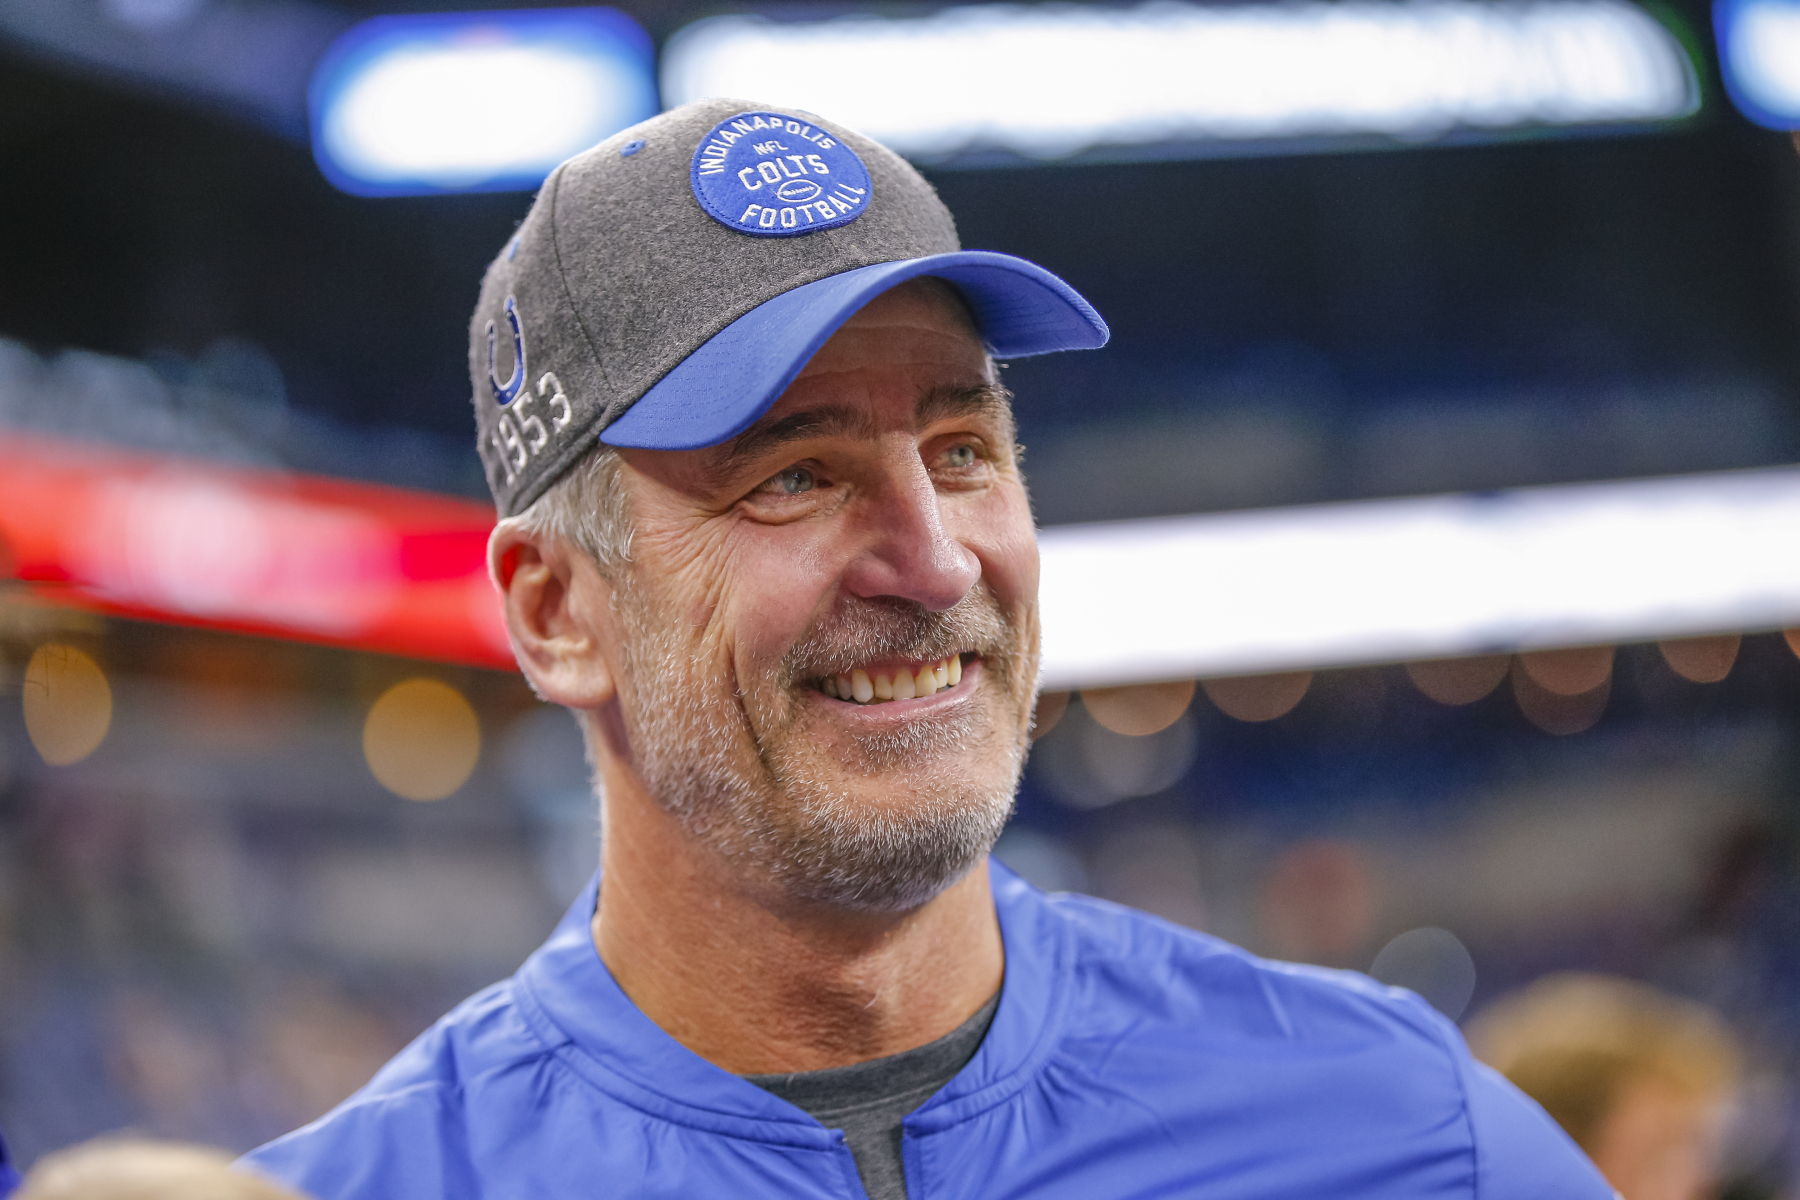 Frank Reich has become a successful head coach with the Indianapolis Colts. Before becoming a coach, though, he had career in religion.